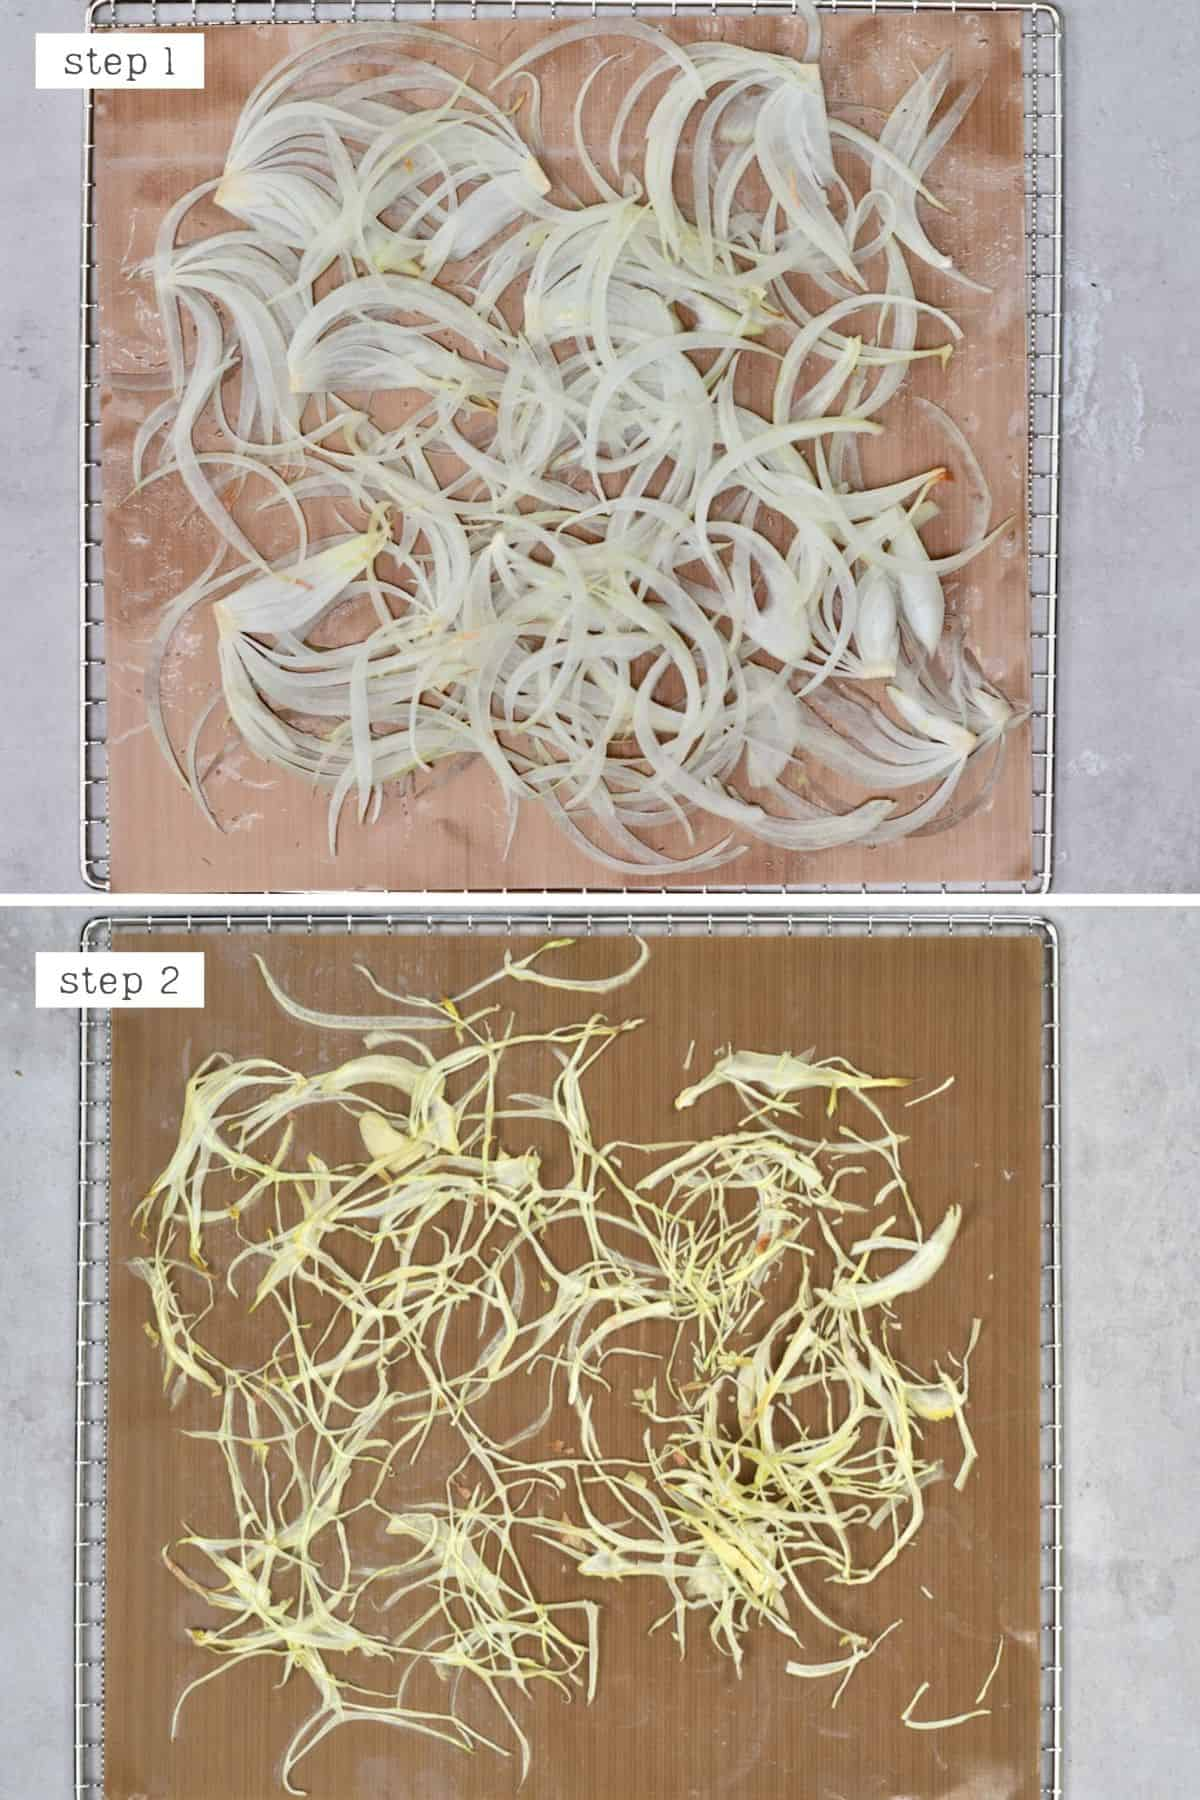 Steps for dehydrating onions